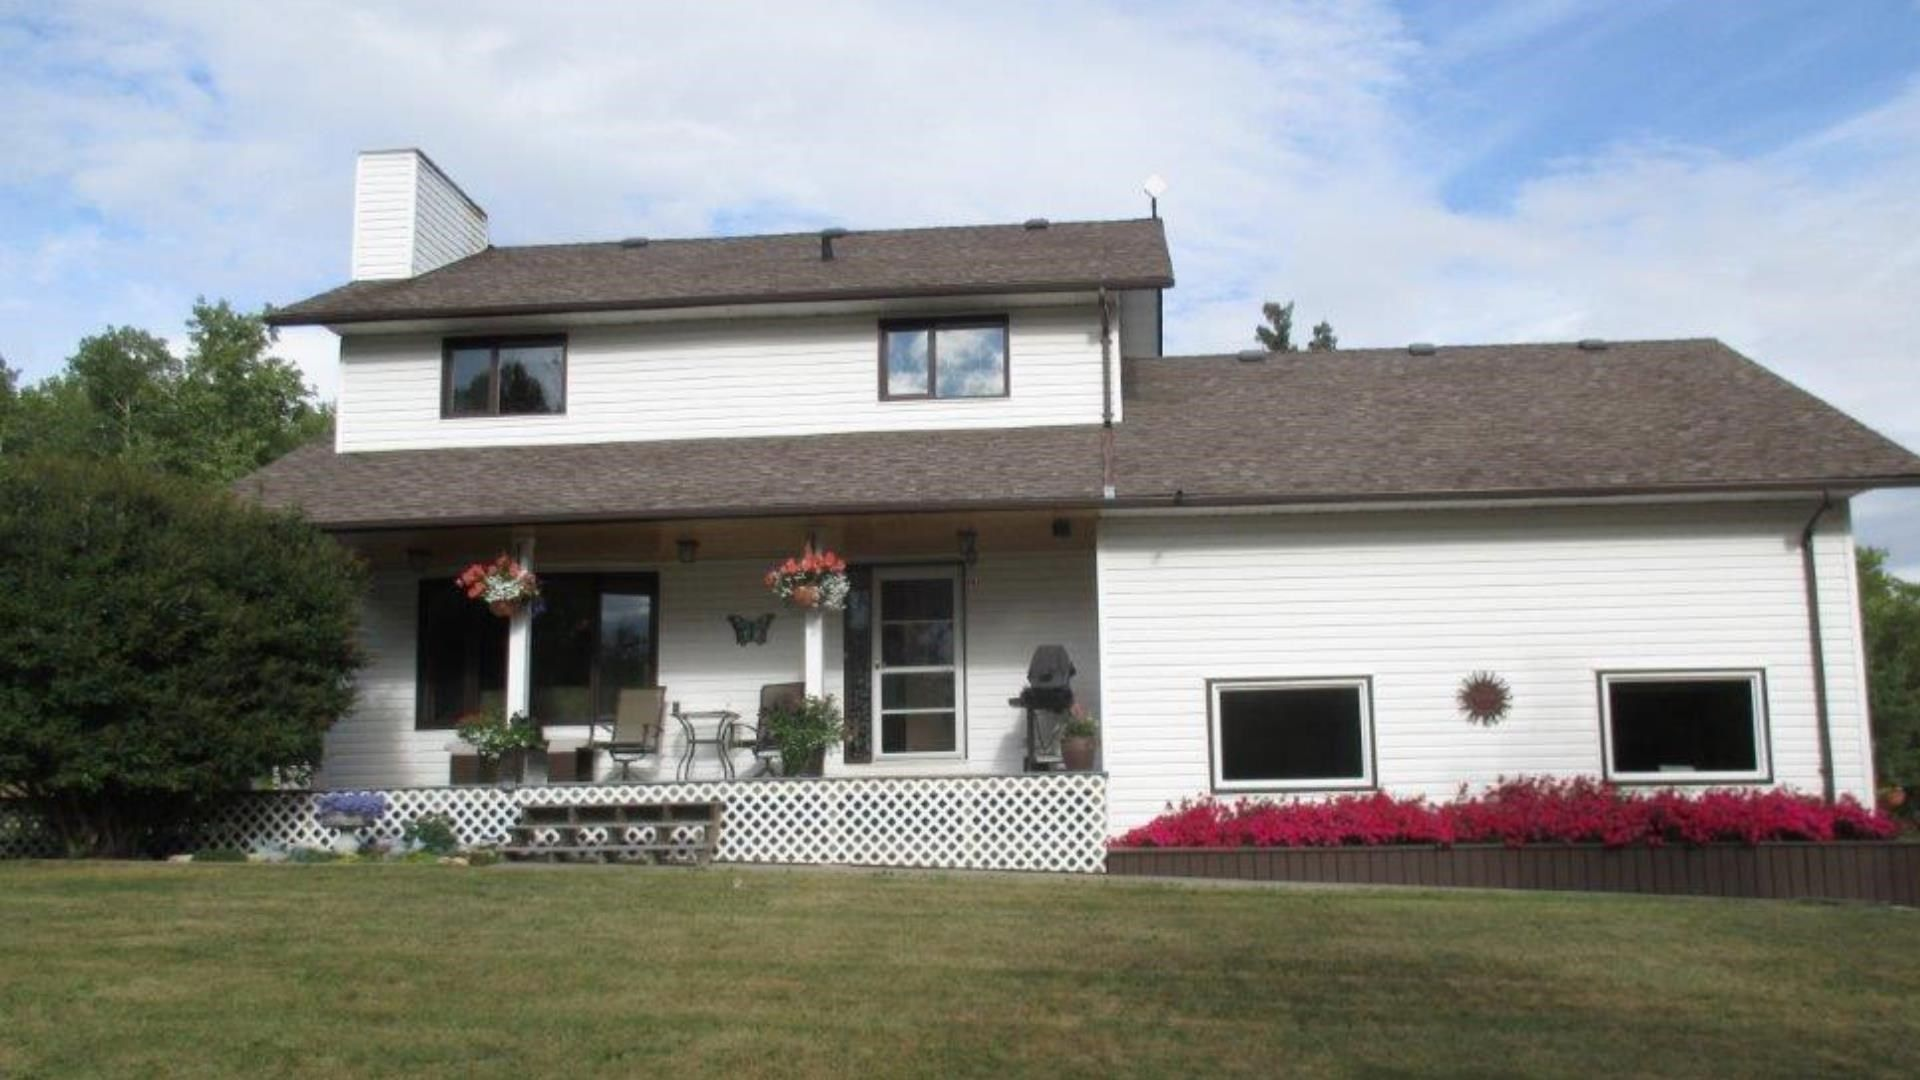 """Main Photo: 13066 MOUNTAINVIEW Road in Fort St. John: Fort St. John - Rural W 100th House for sale in """"MOUNTAINVIEW"""" (Fort St. John (Zone 60))  : MLS®# R2597874"""